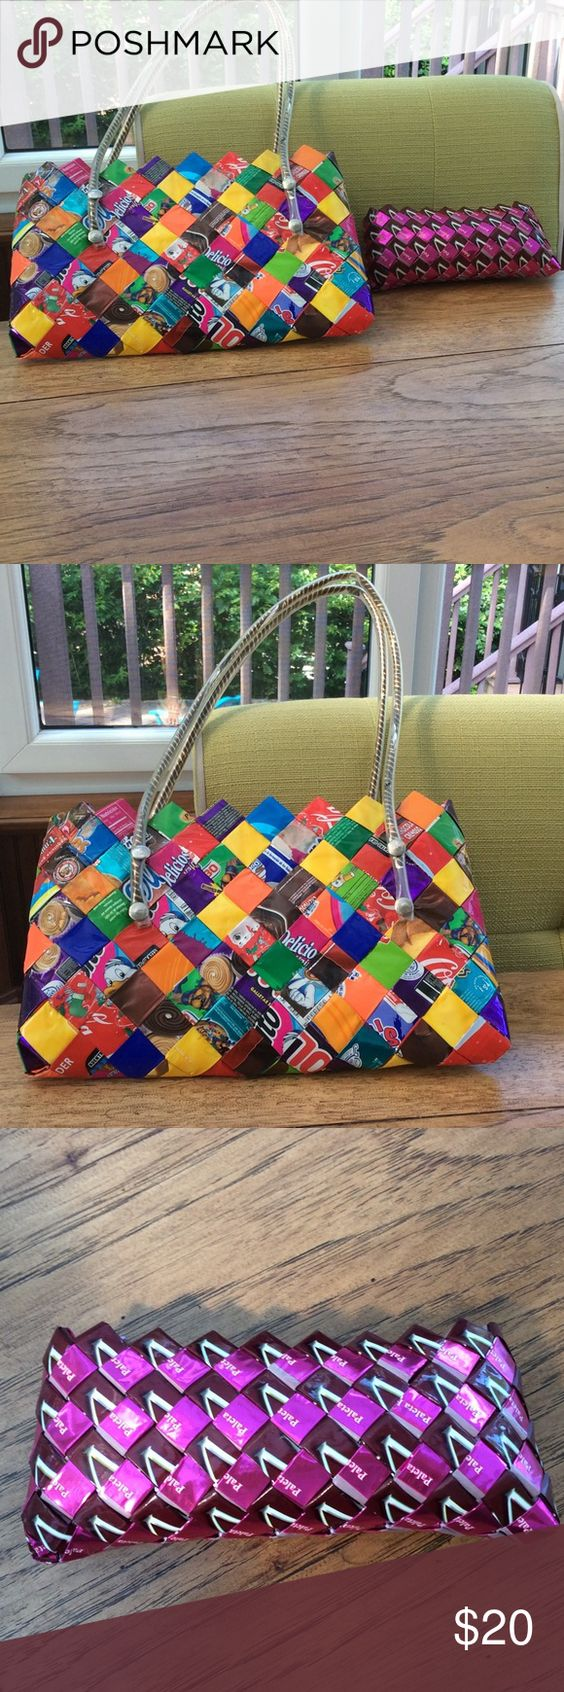 Handbag set Hand made in Mexico from candy wrappers. Never used Bags Hobos